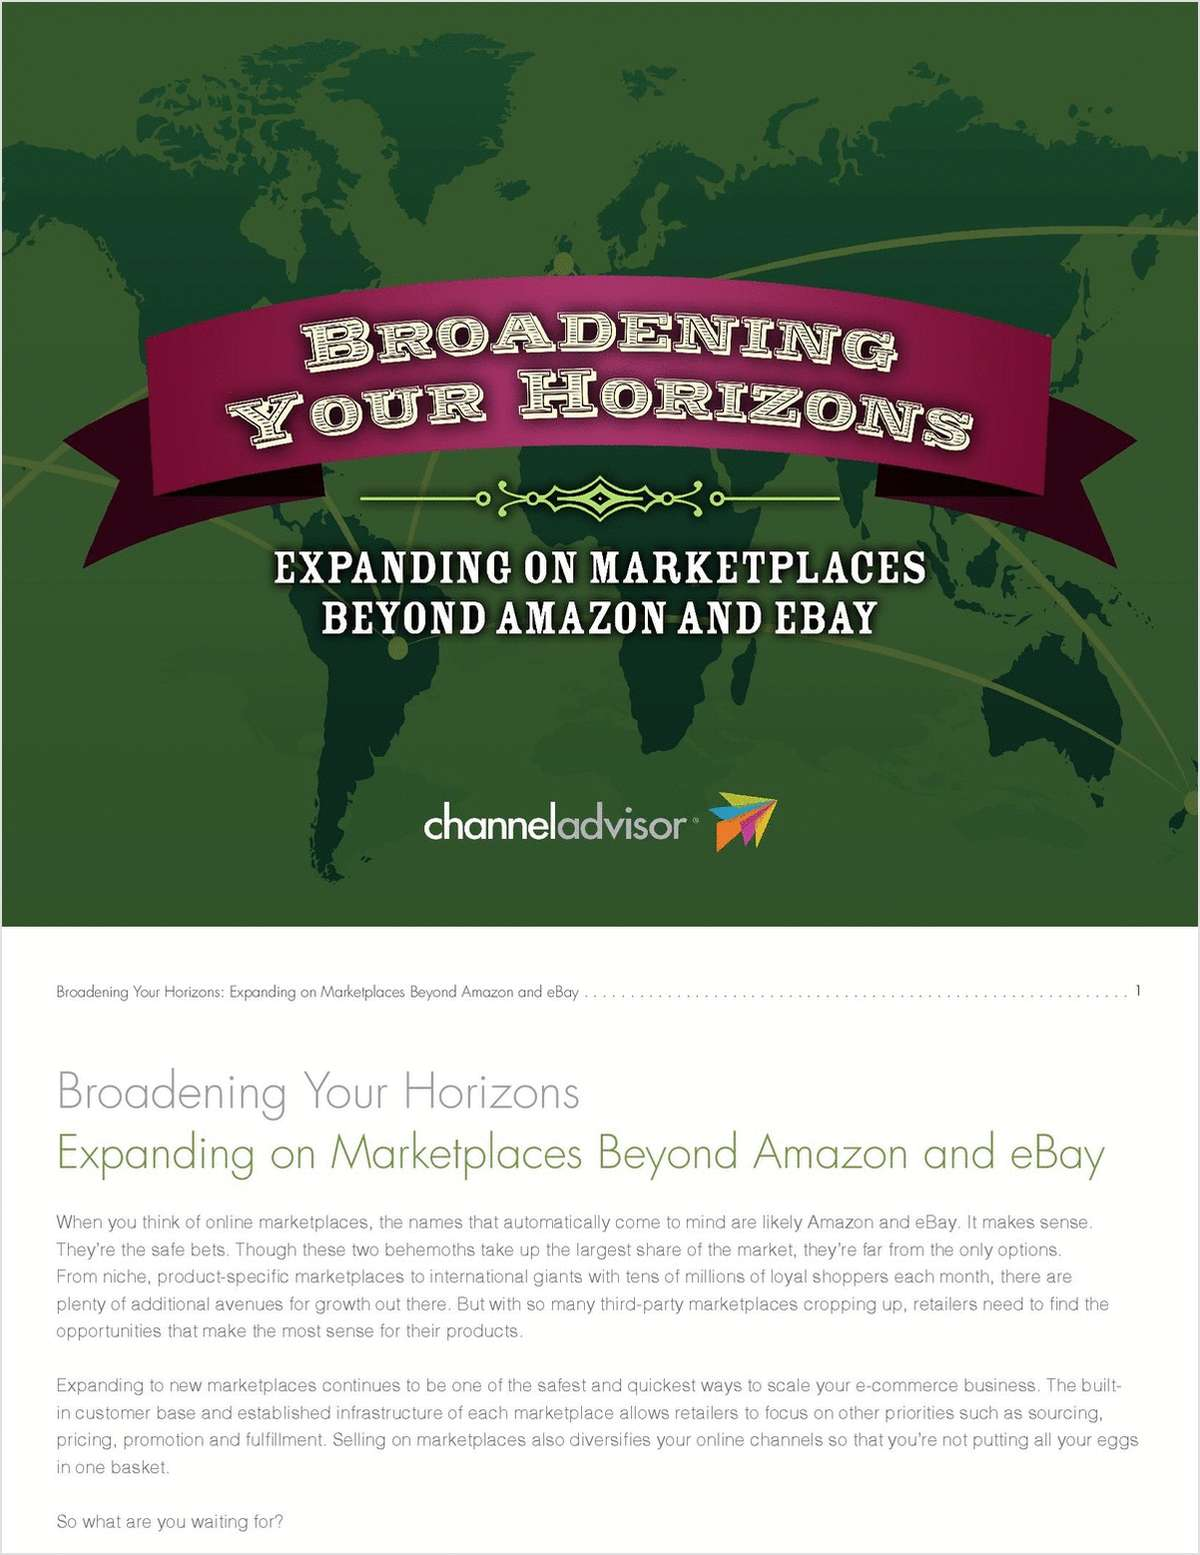 There's More to Life Than Amazon and eBay. Expand to New Marketplaces.